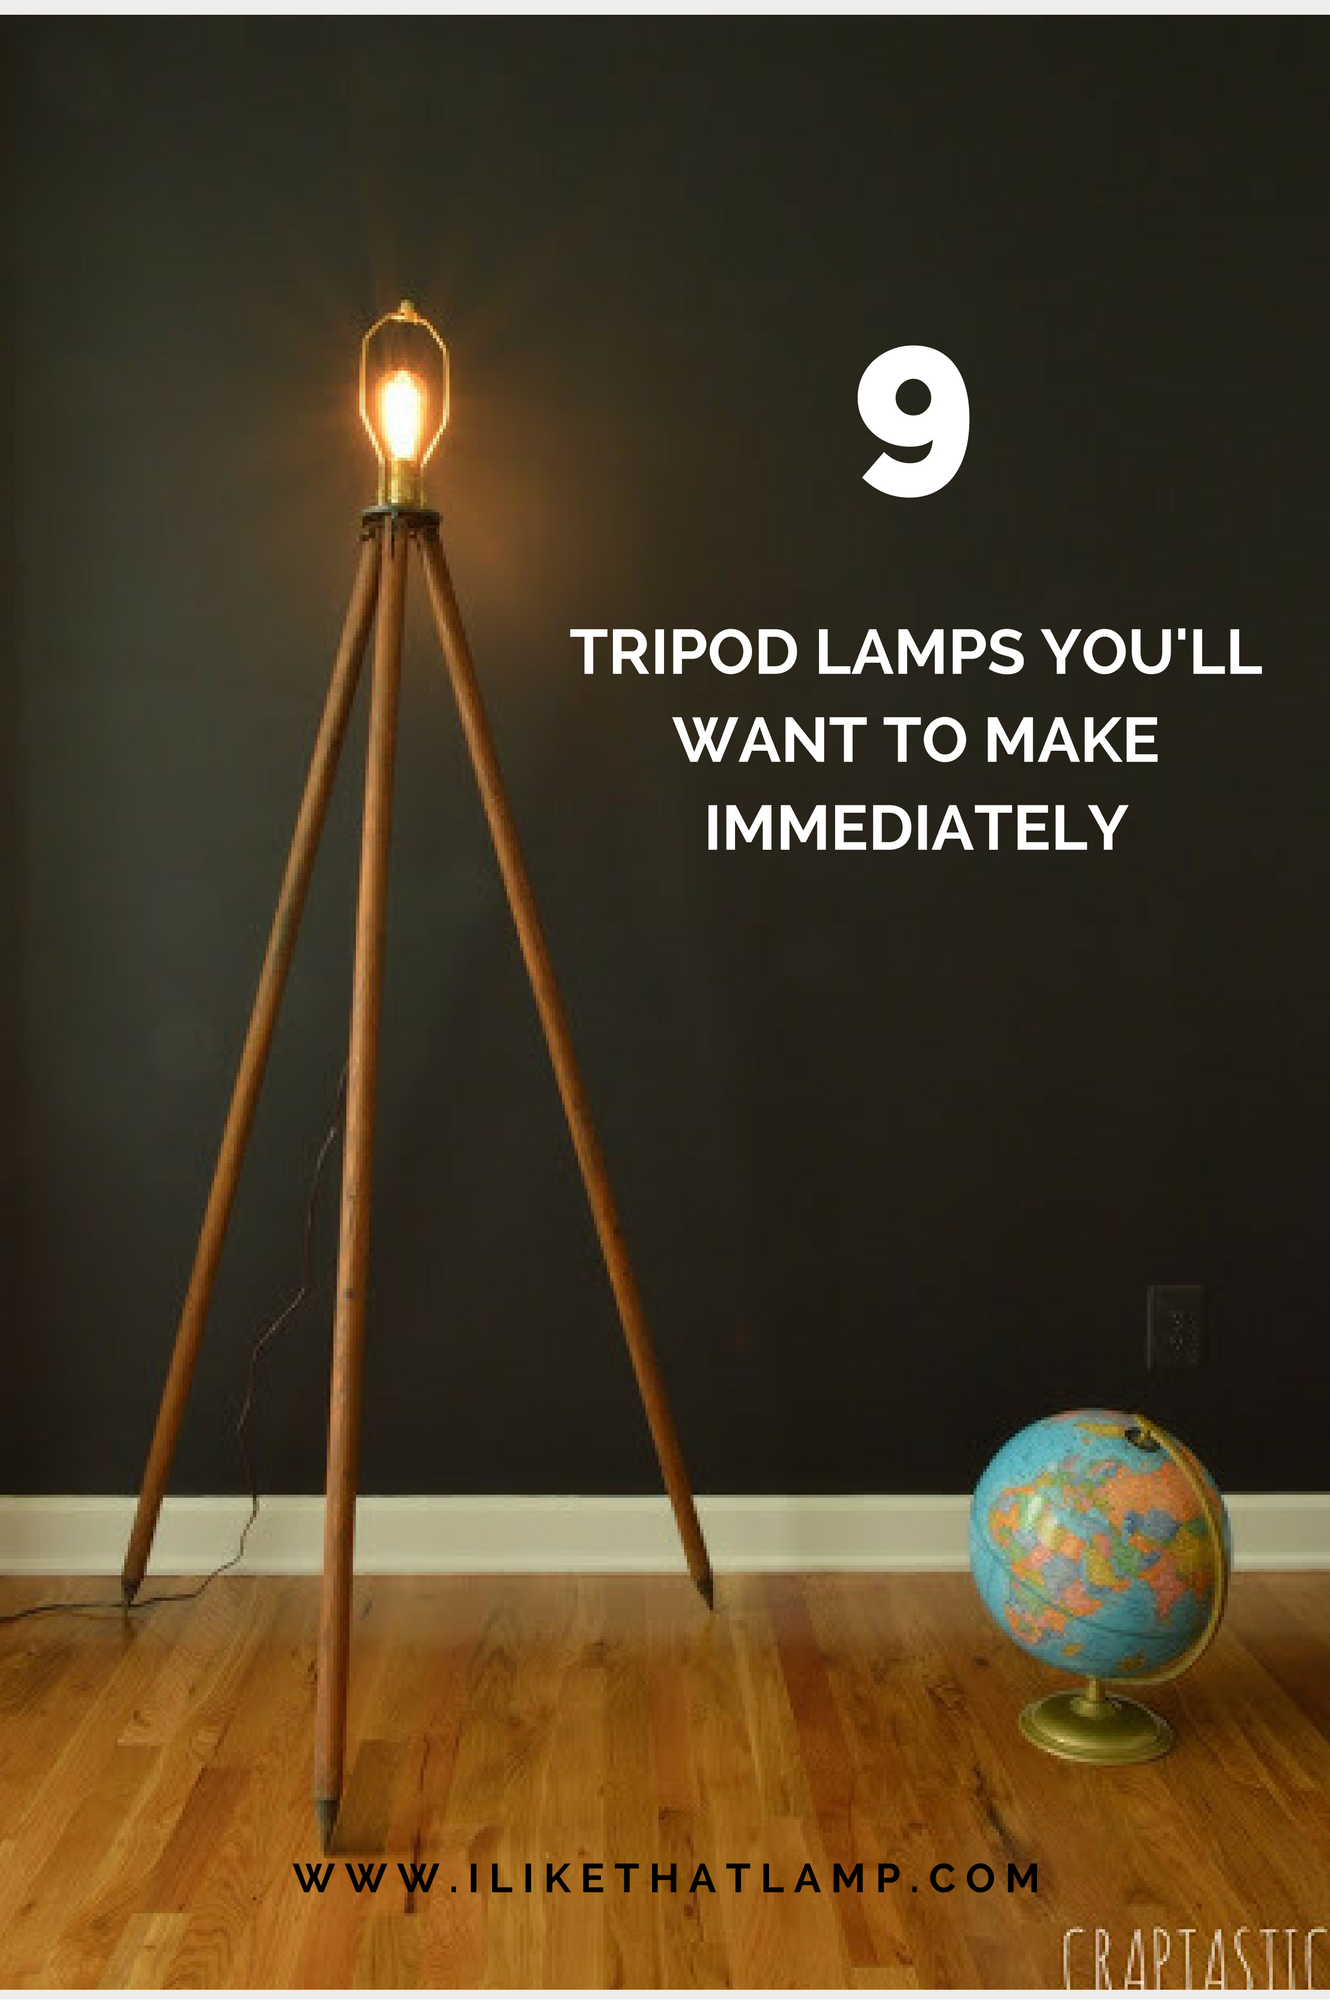 9 Diy Tripod Lamps You Ll Want To Make Immediately Lampbedroom Tripod Lamp Diy Tripod Lamp